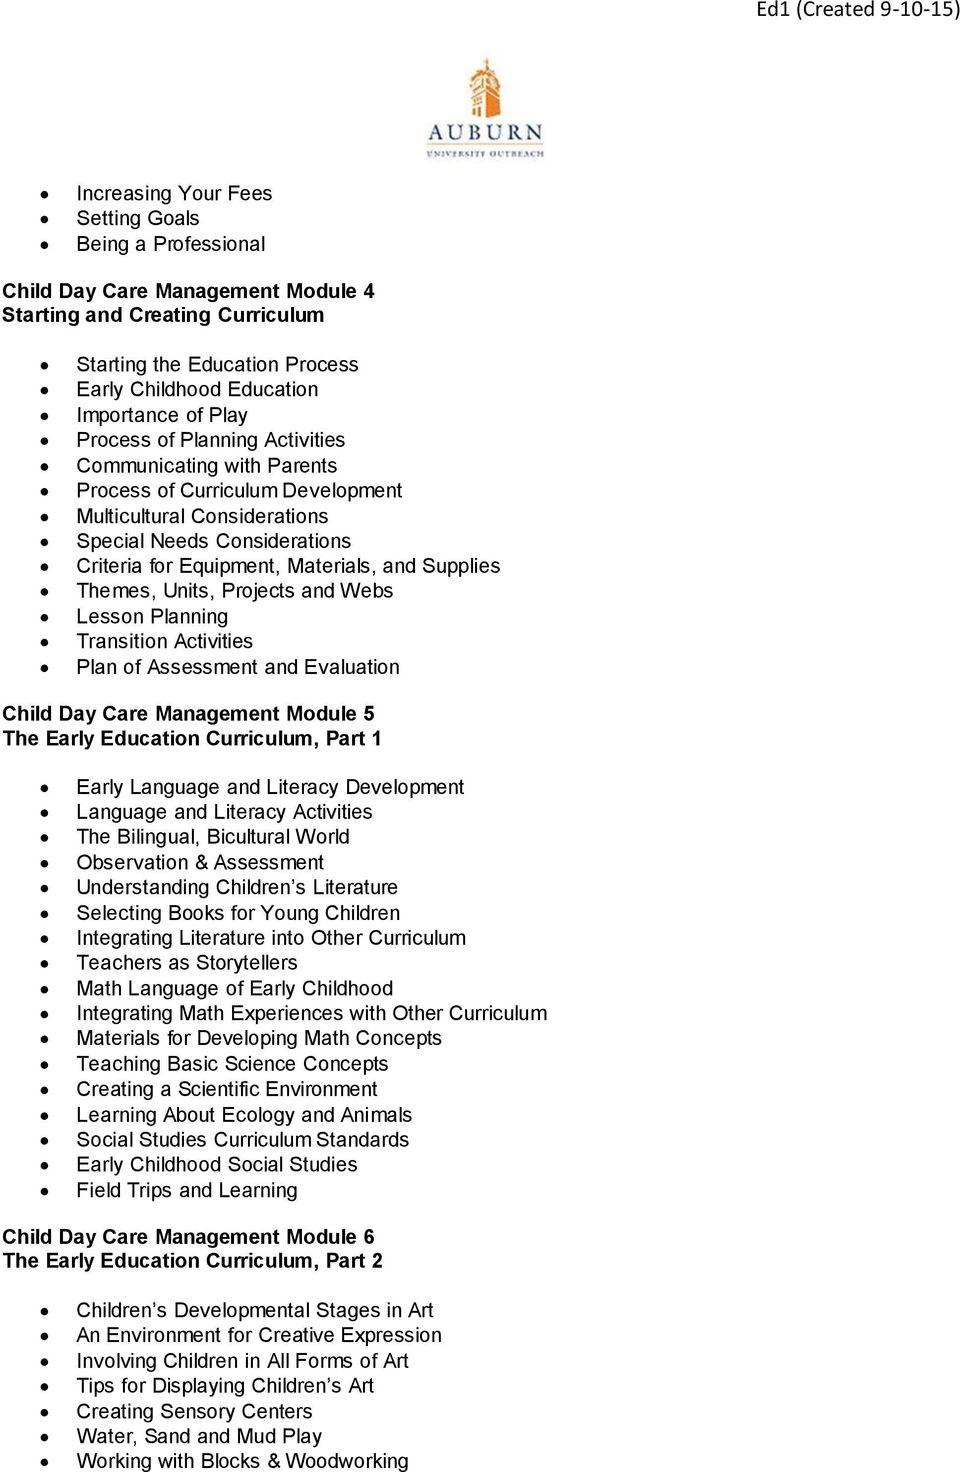 Themes, Units, Projects and Webs Lesson Planning Transition Activities Plan of Assessment and Evaluation Child Day Care Management Module 5 The Early Education Curriculum, Part 1 Early Language and